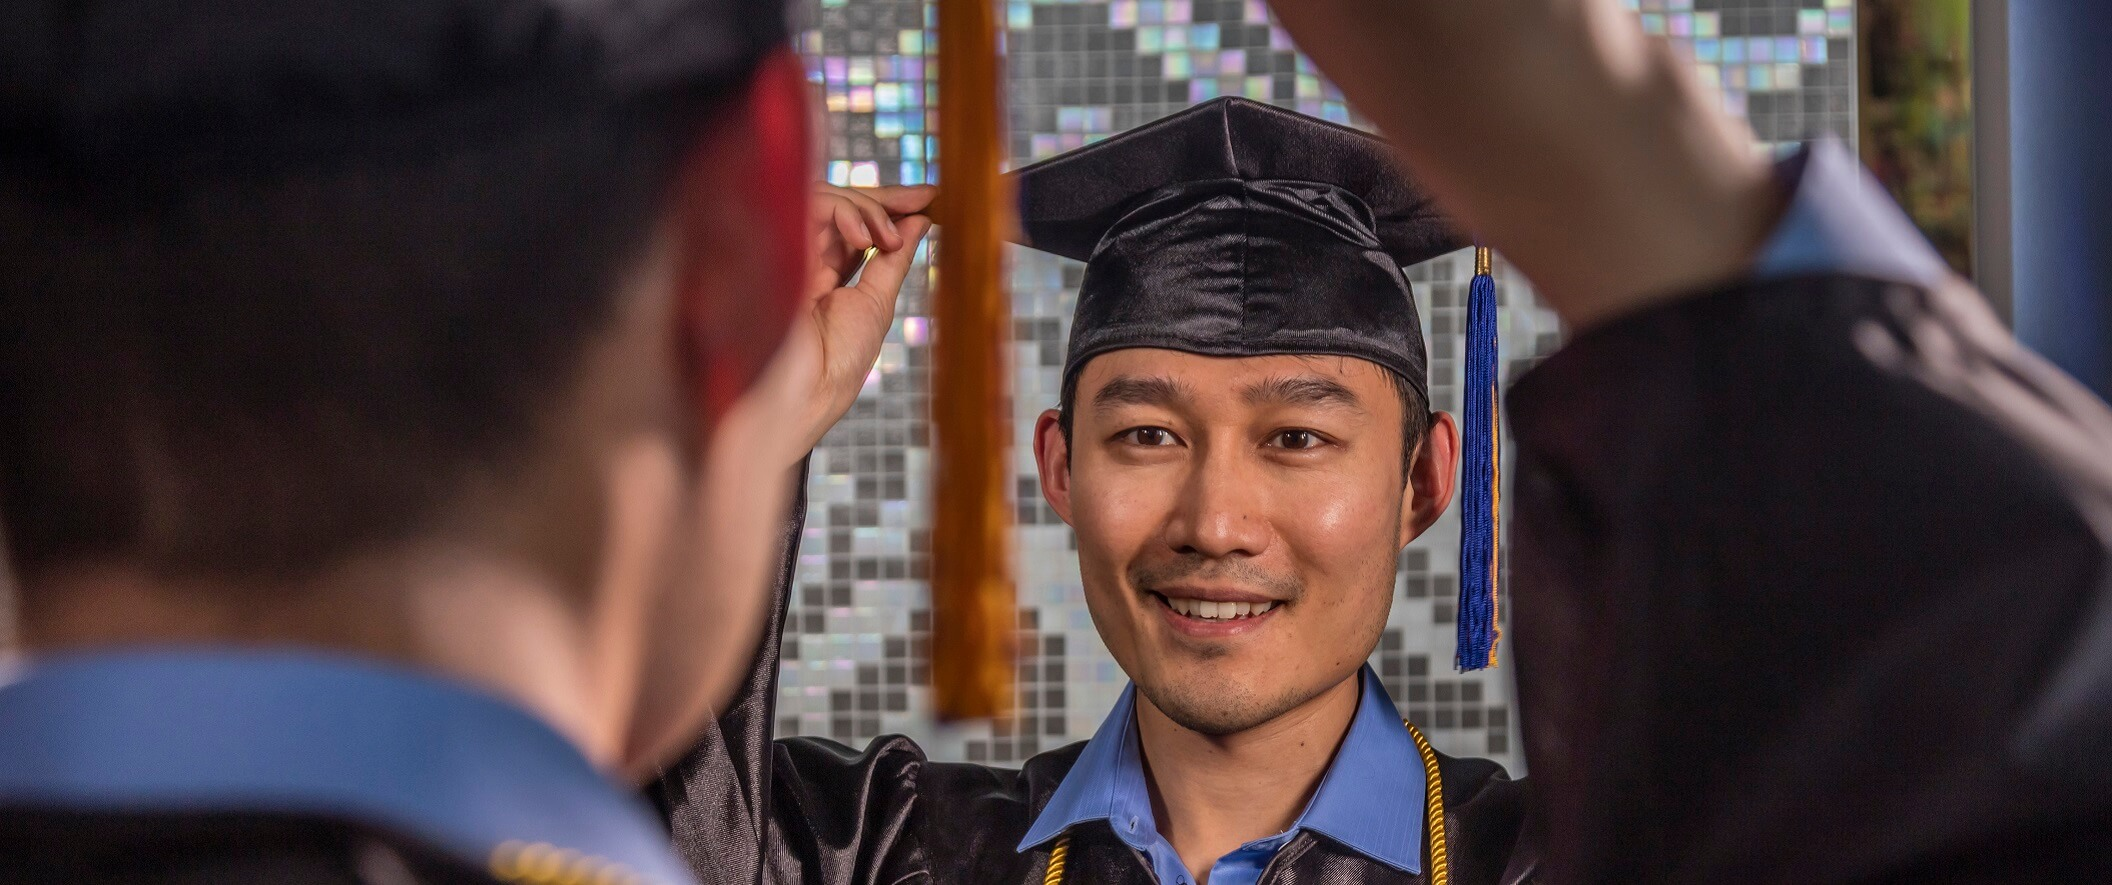 guy in graduation cap and gown looking in mirror